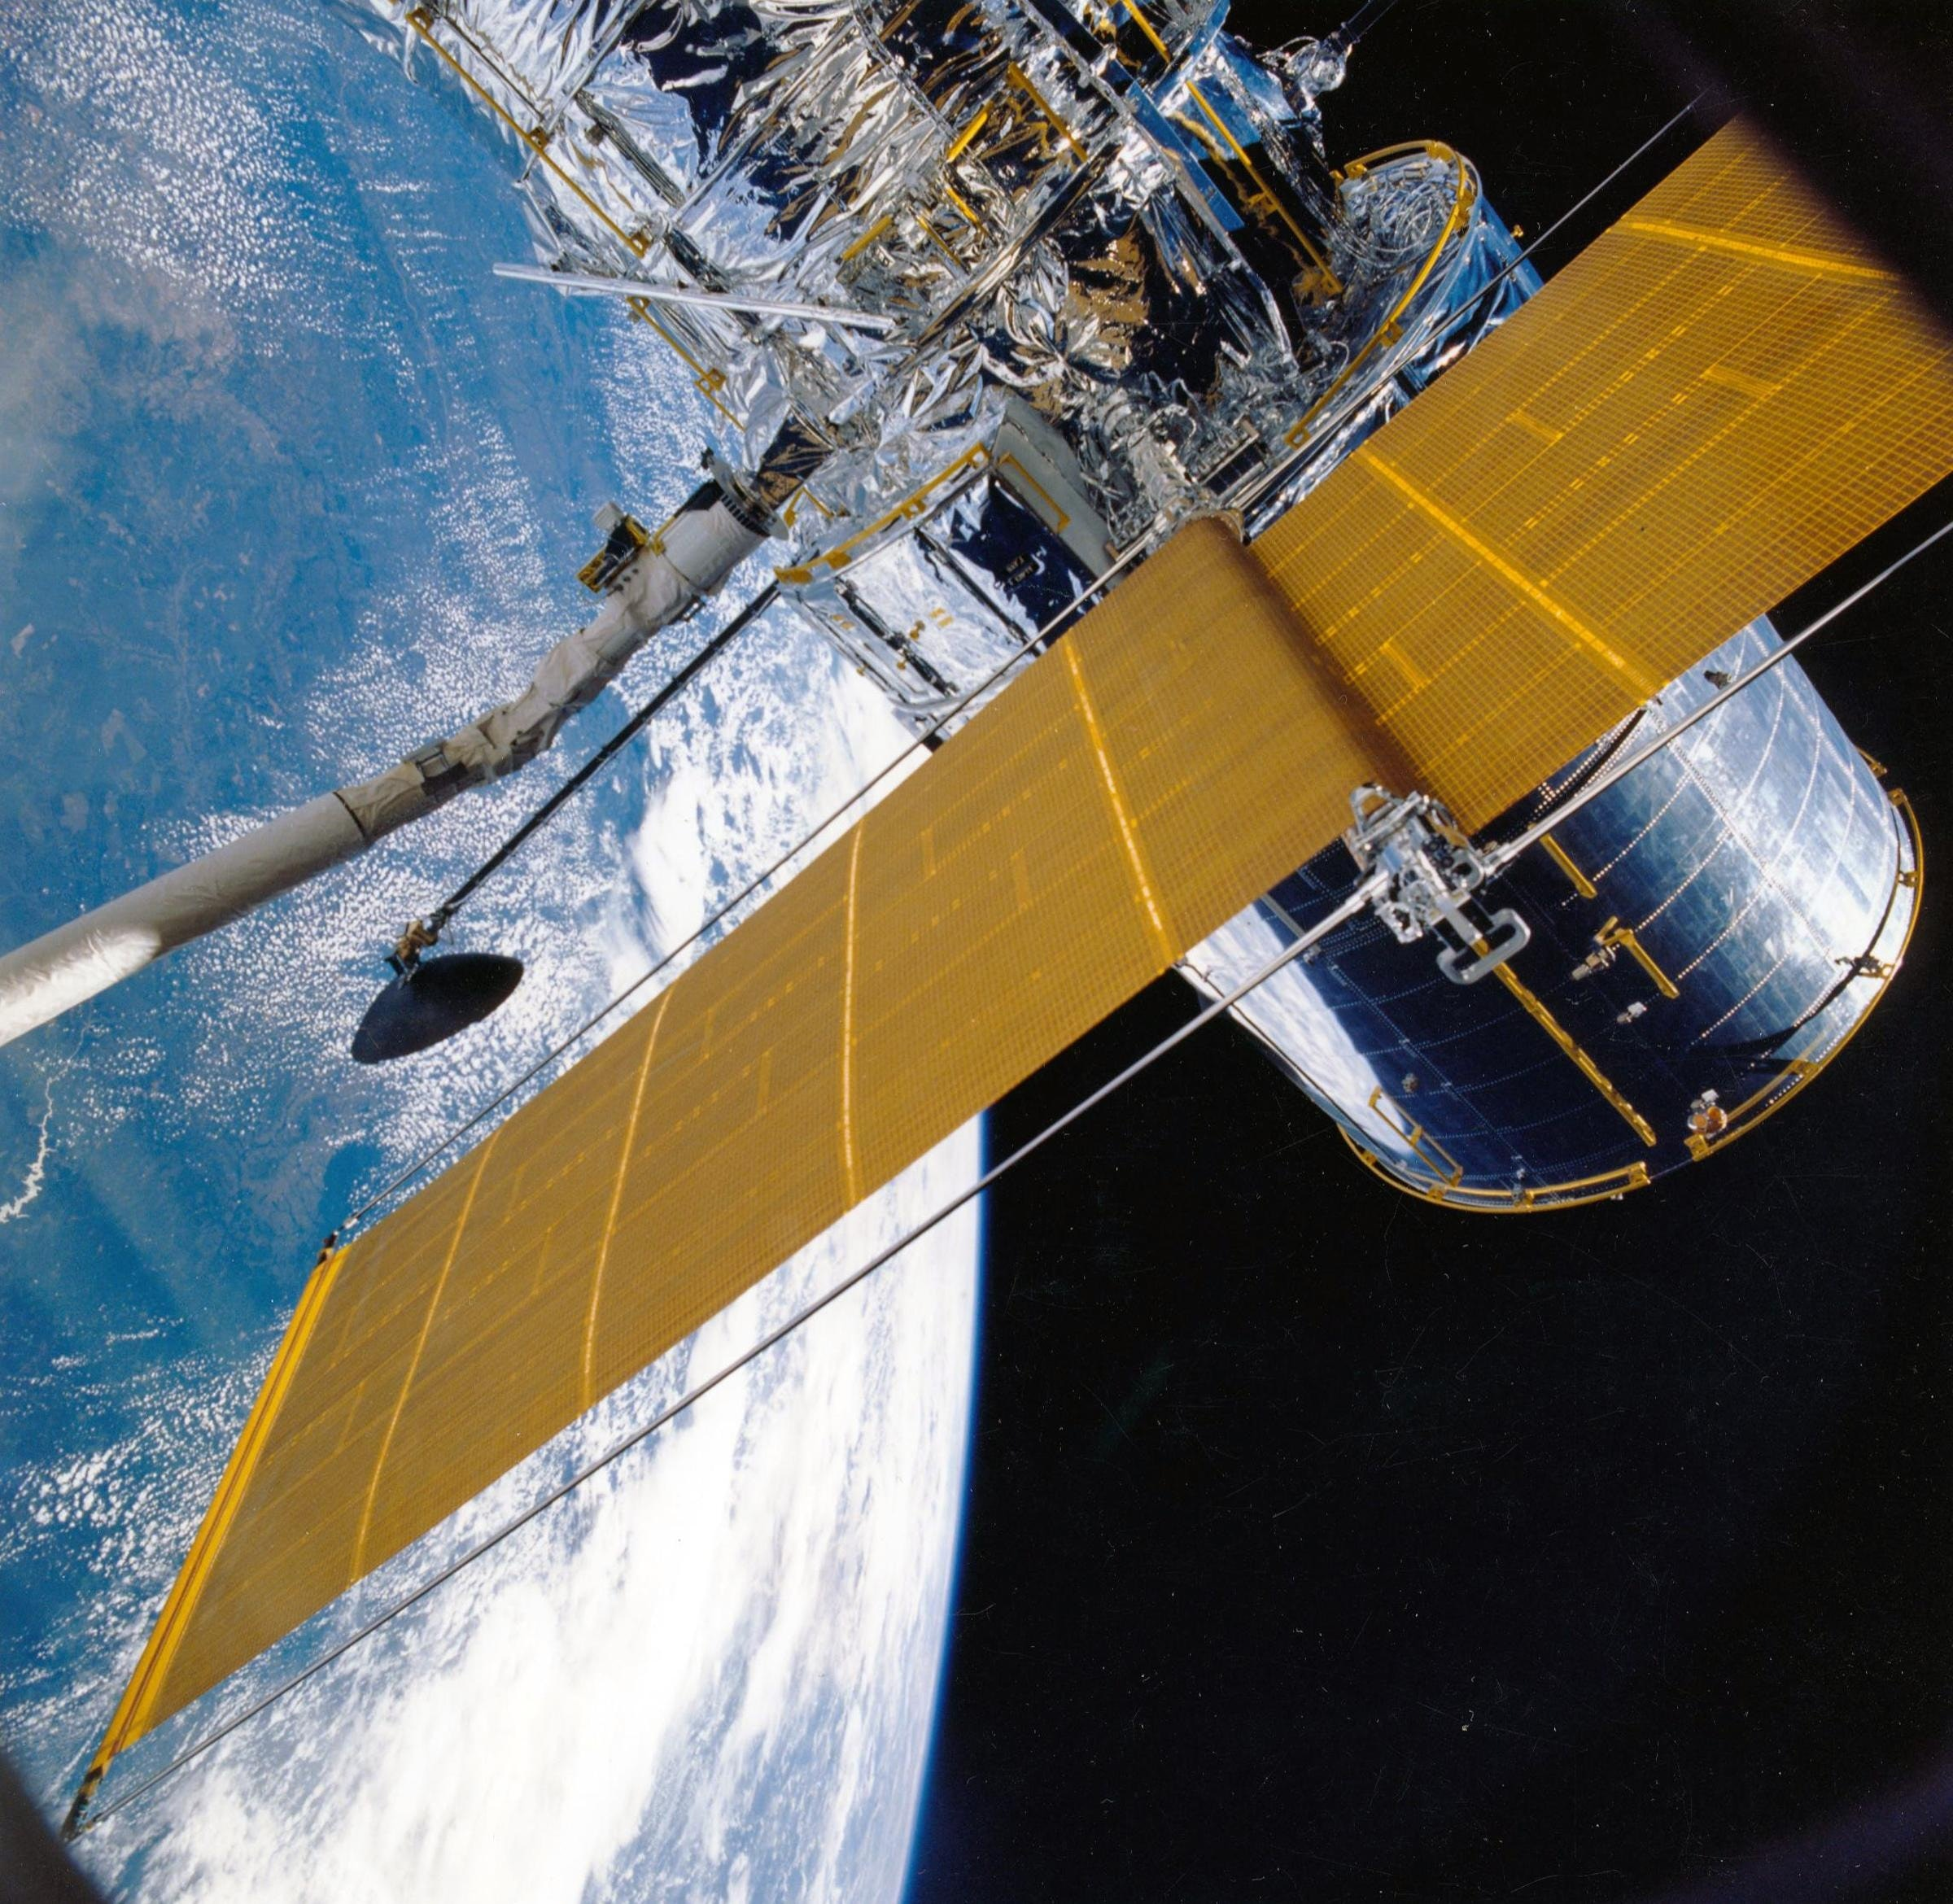 Aerial aerospace image of earth and space equipment